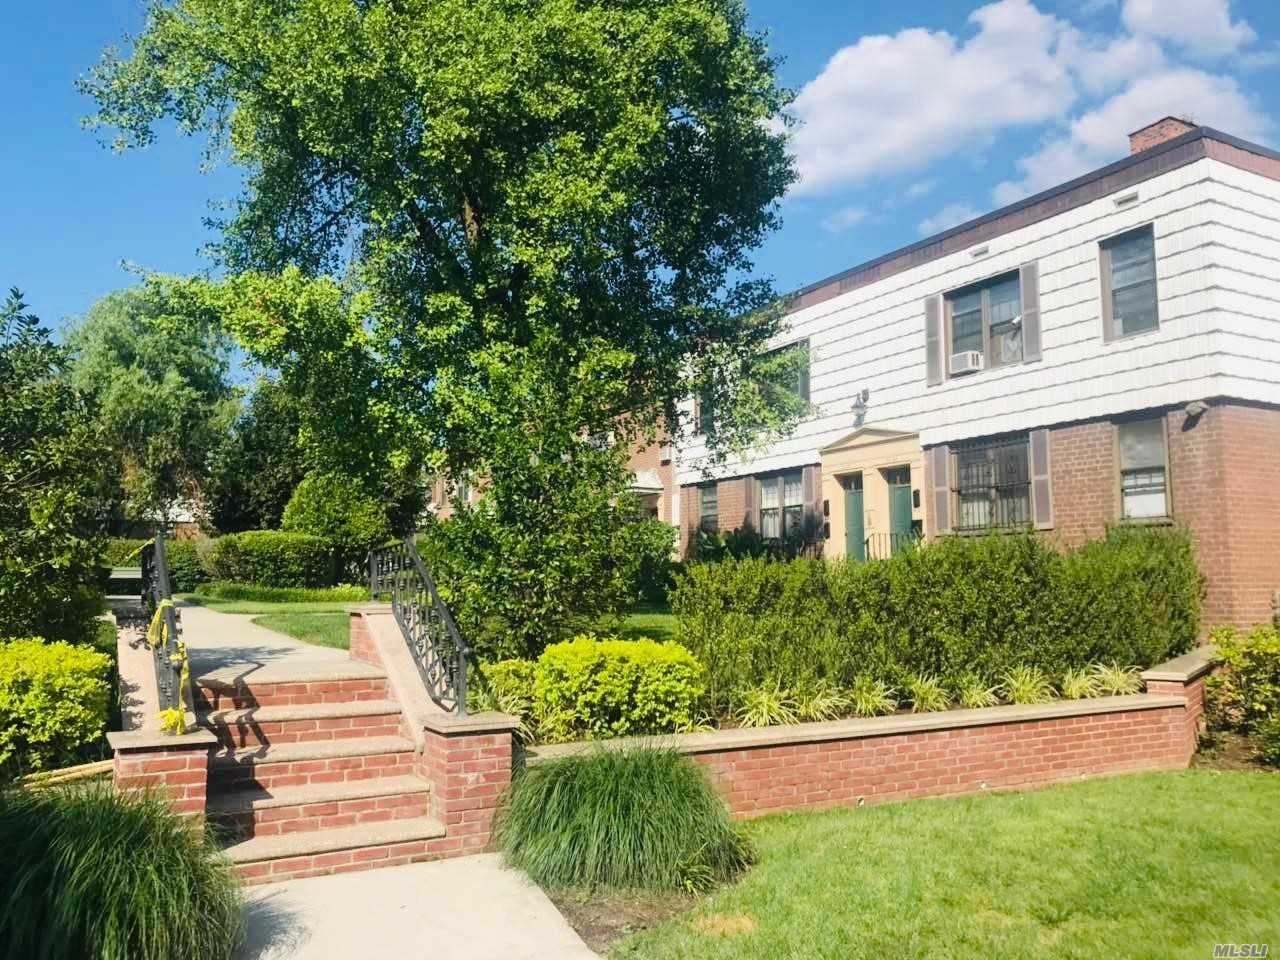 70-43 Park Drive East 11367 - One of Flushing Homes for Sale